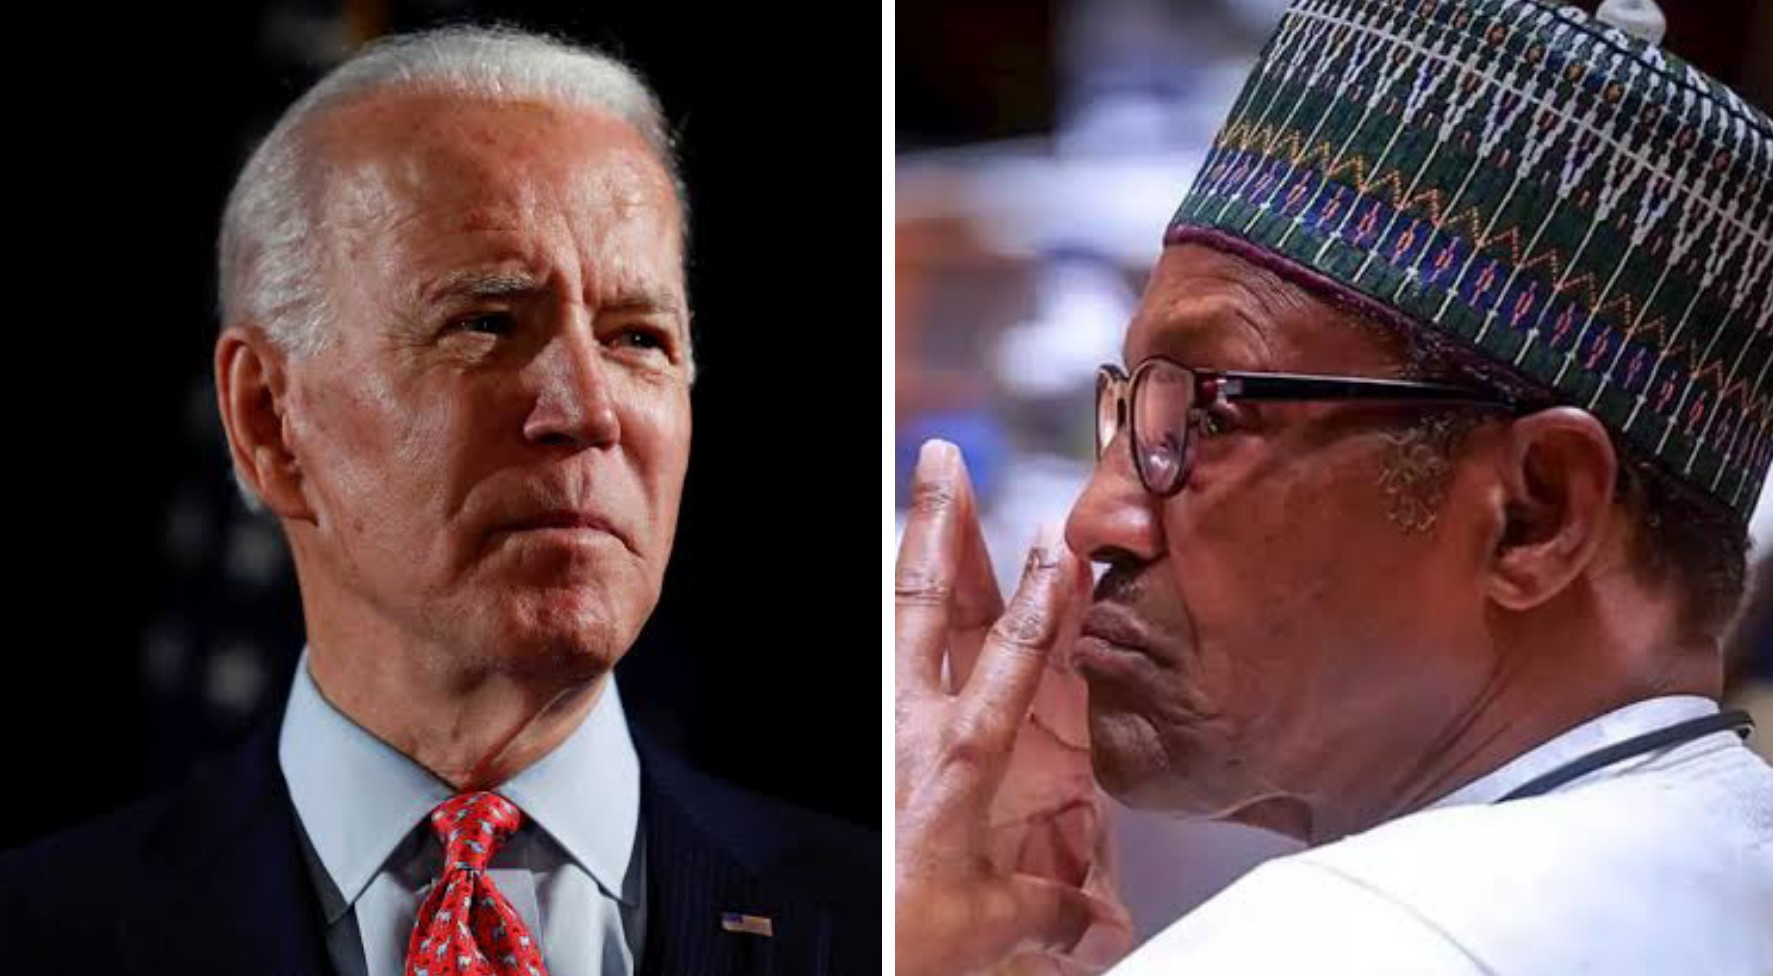 Cease violent crackdowns on protesters - US Presidential candidate, Joe Biden tells Buhari